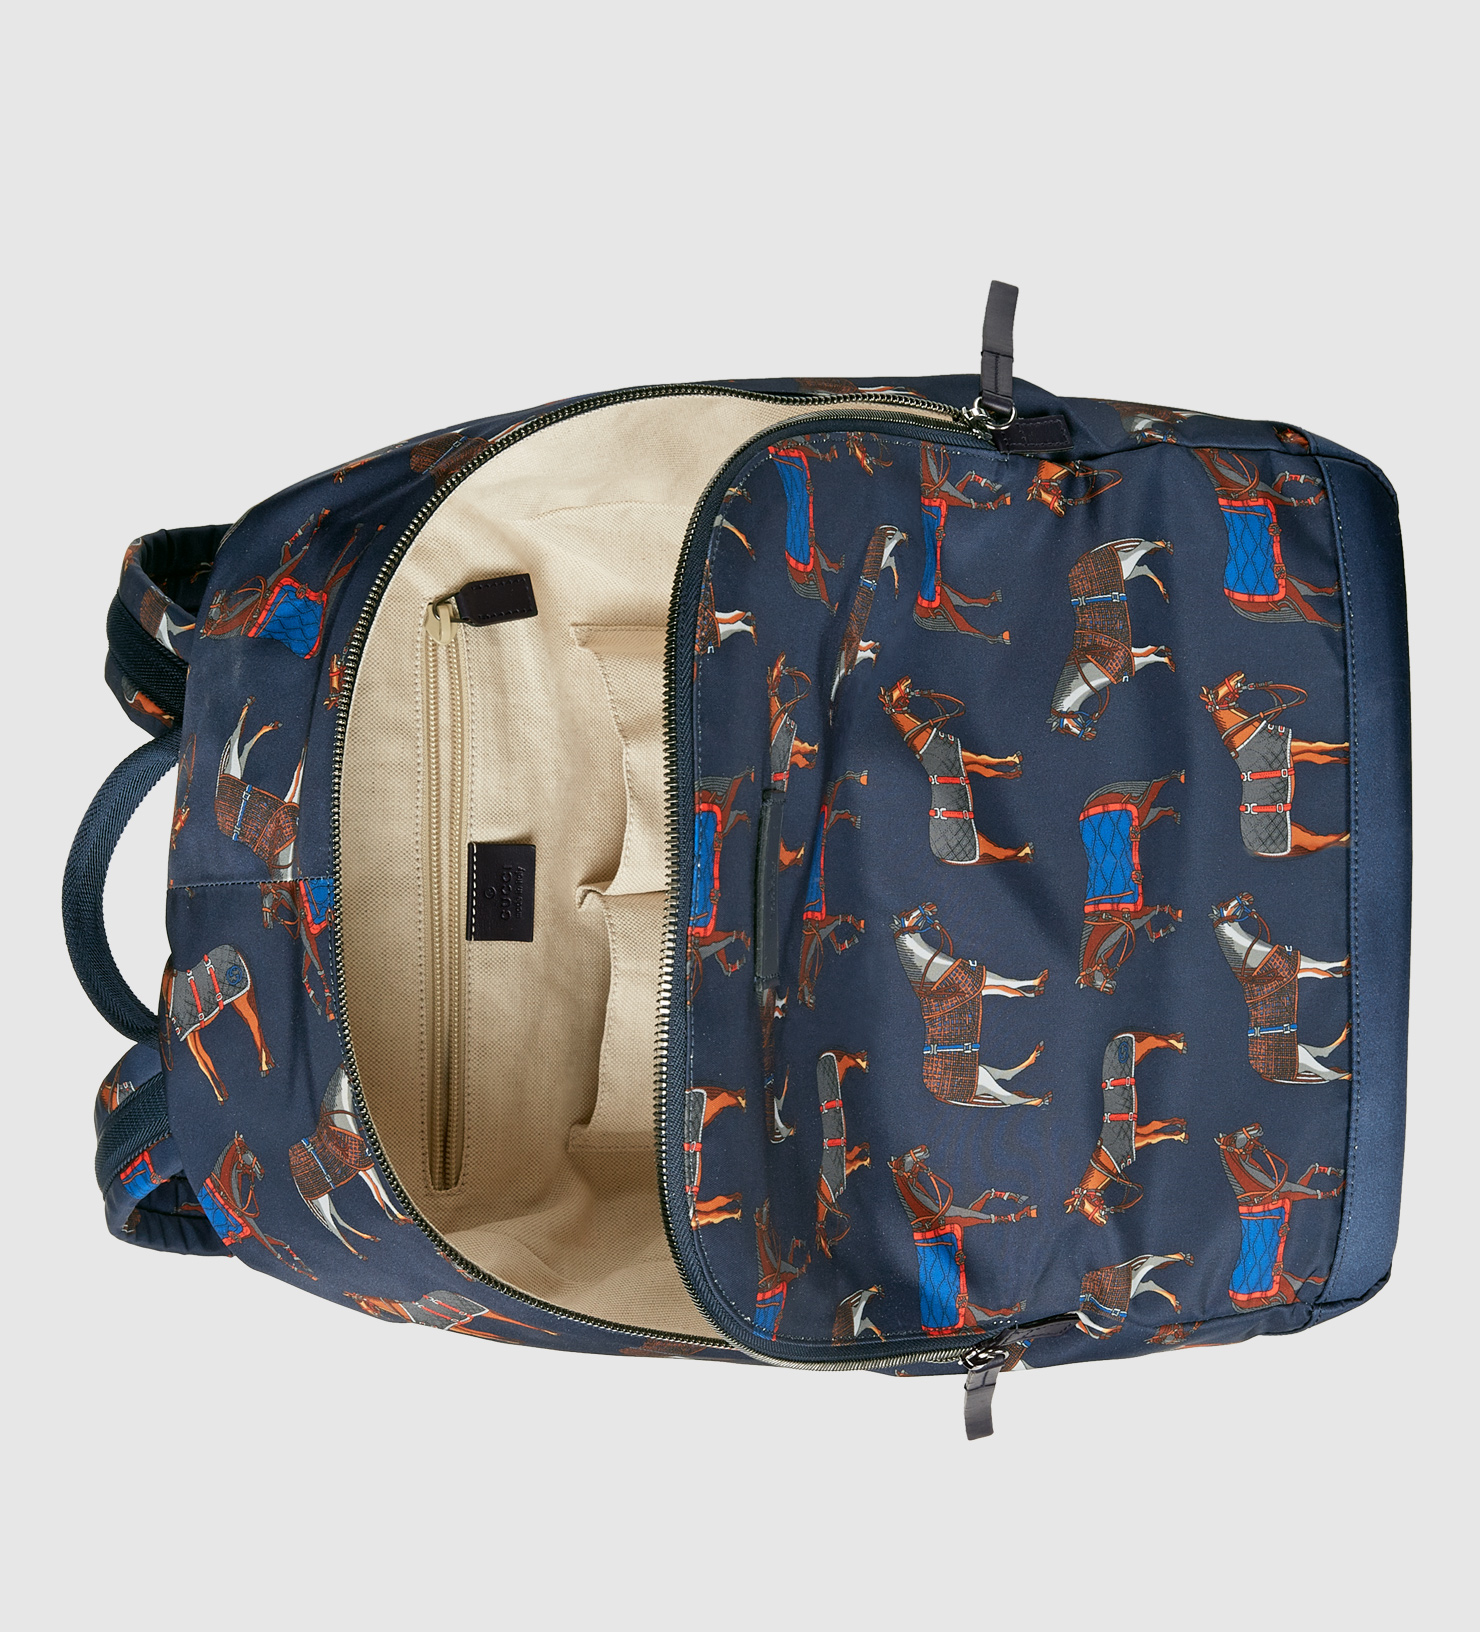 Gucci Horse Print Backpack in Blue for Men - Lyst 0bee85a025